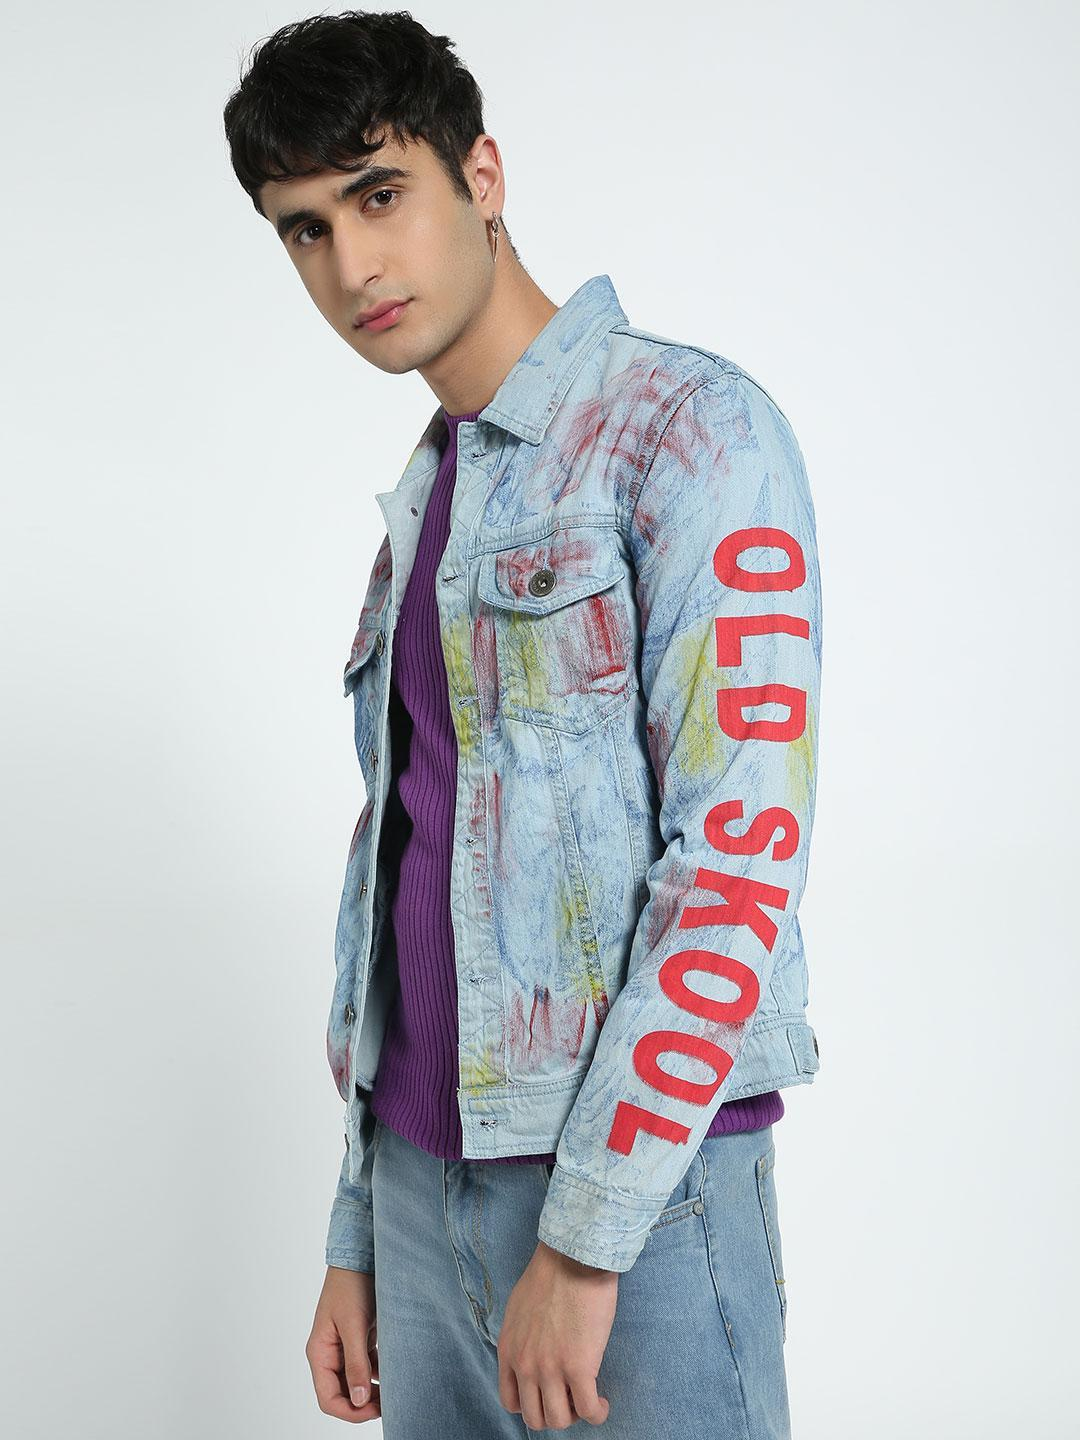 K Denim Multi KOOVS Graffiti Denim Trucker Jacket 1